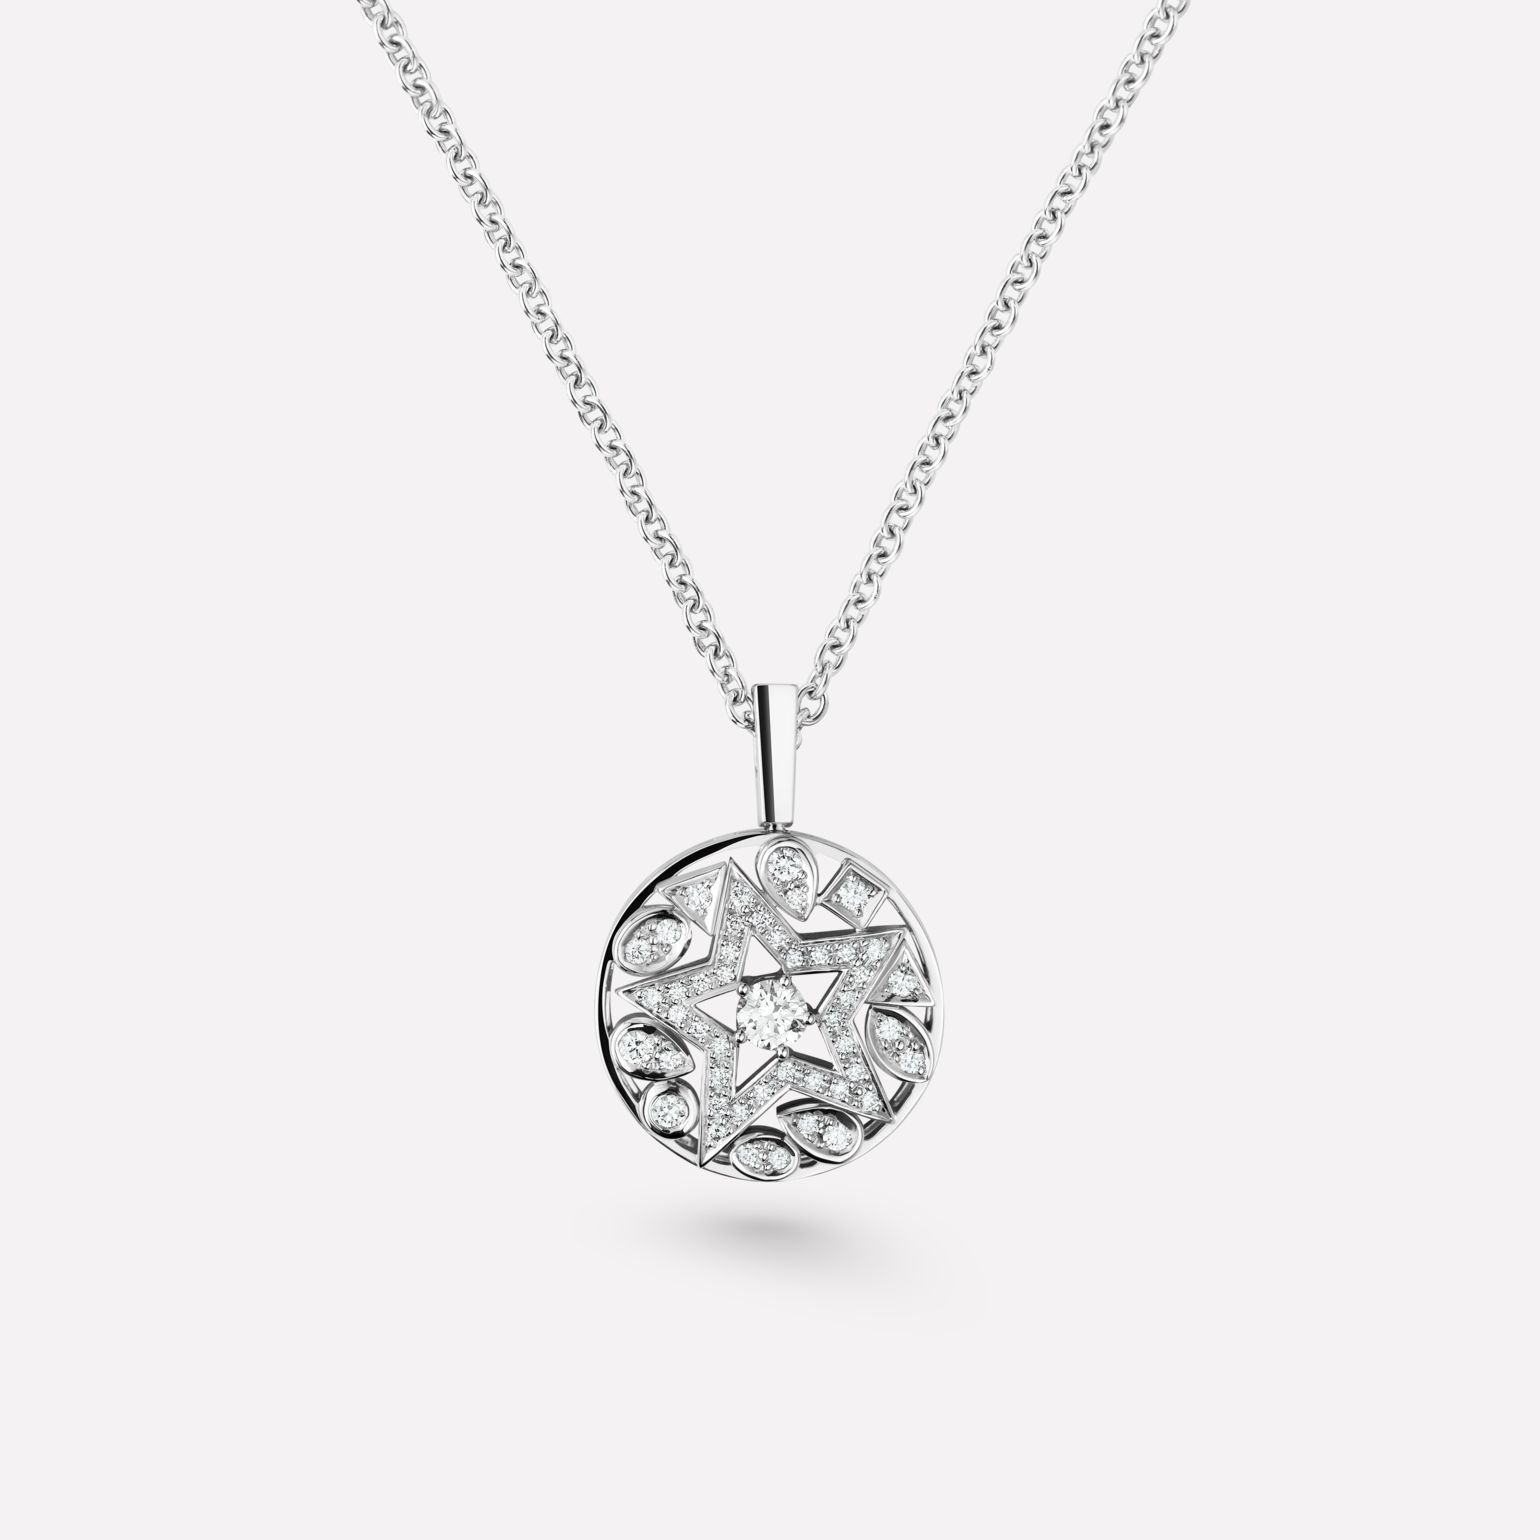 Comète Necklace Round star necklace in 18K white gold, diamonds and central diamond